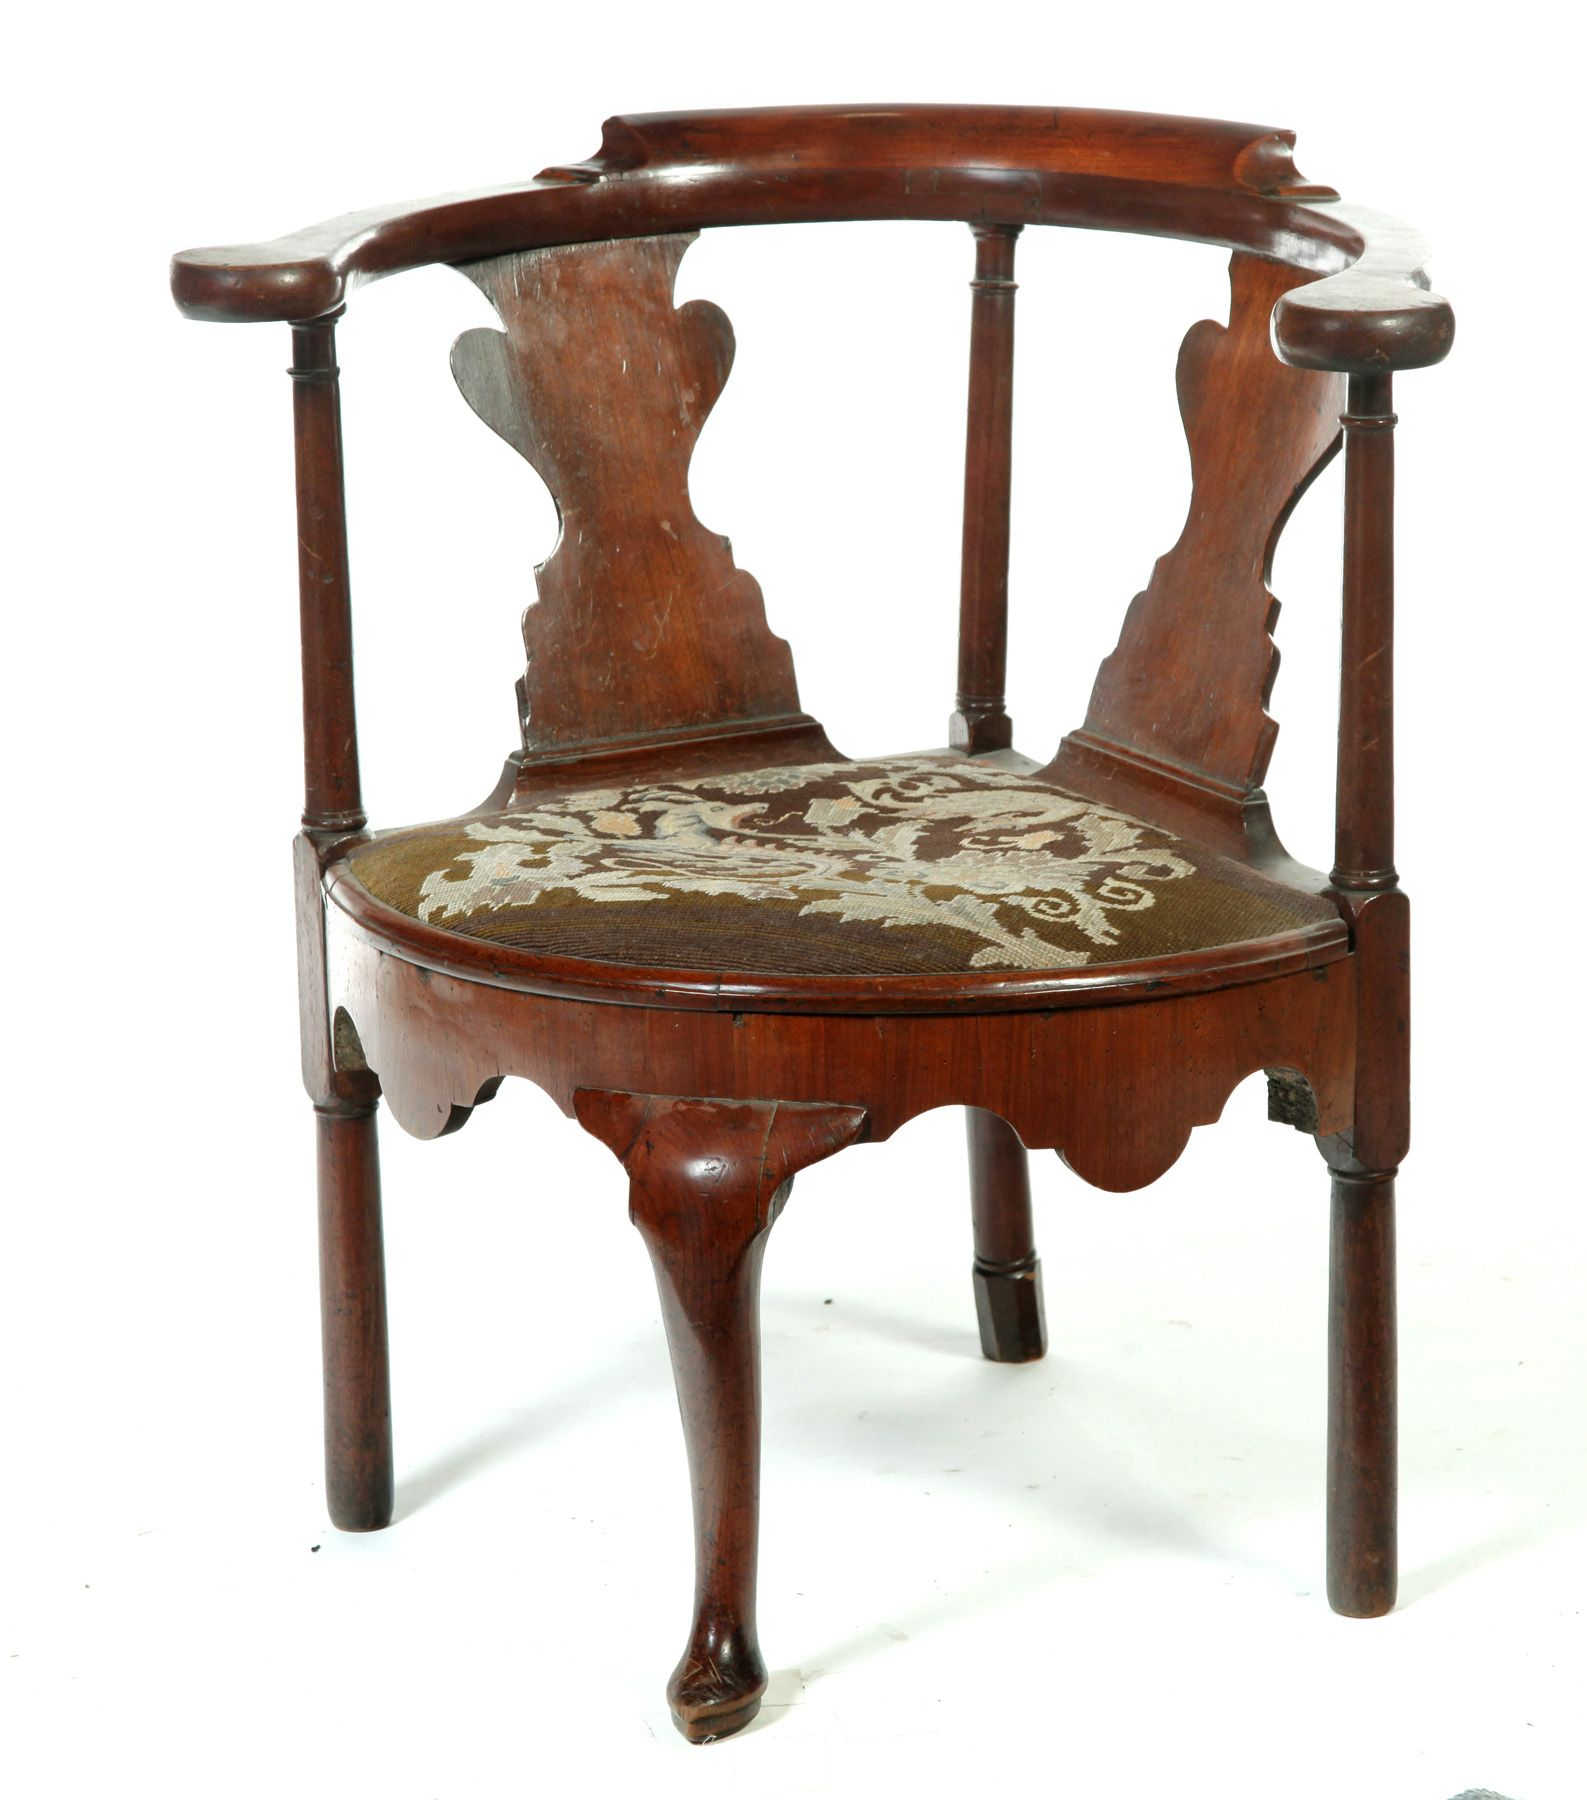 English Queen Anne Corner Chair Mid 18th Century Mahogany Vase Splats And Slipper Front Foot Reupholstered Bedroom Furniture For Sale Chair Corner Chair